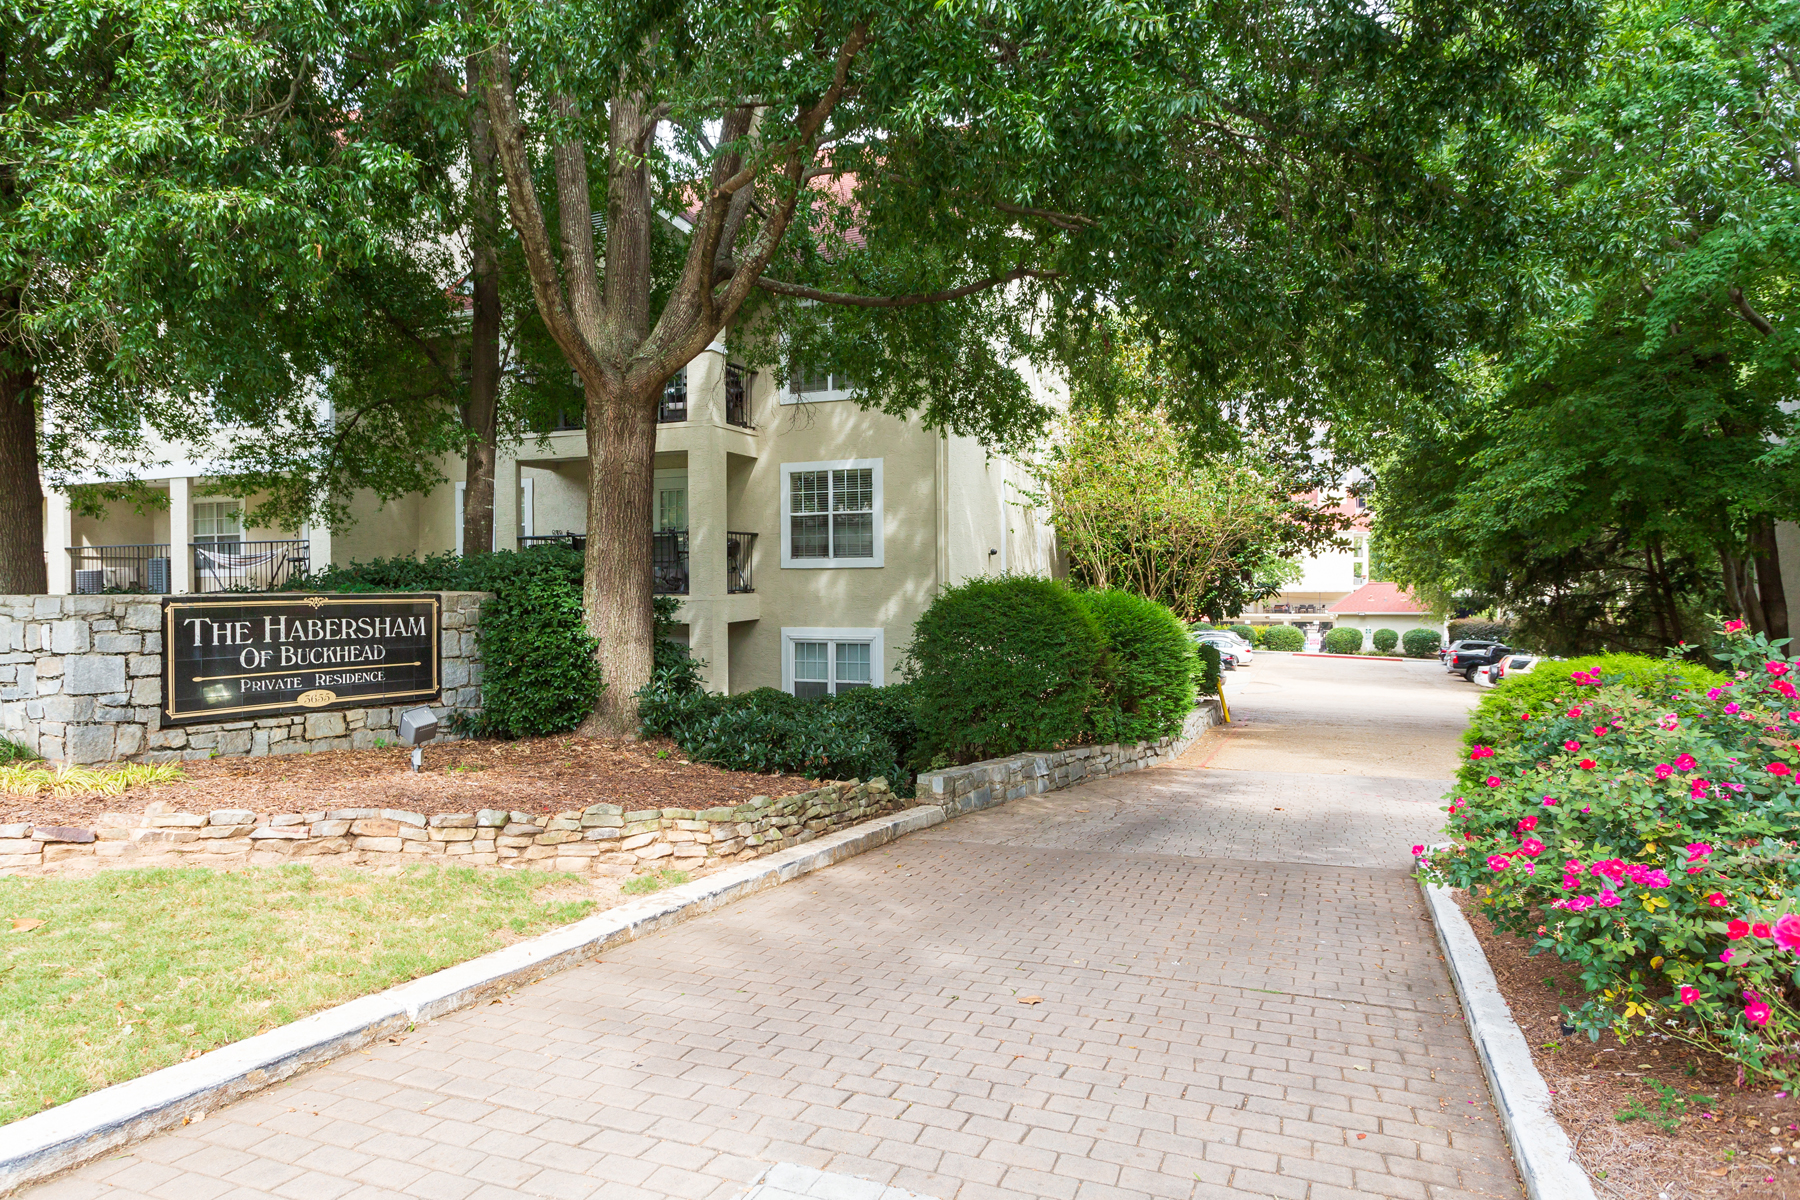 Condominium for Sale at Charming Buckhead Condo 3655 Habersham Road NE No. 202A Atlanta, Georgia 30305 United States